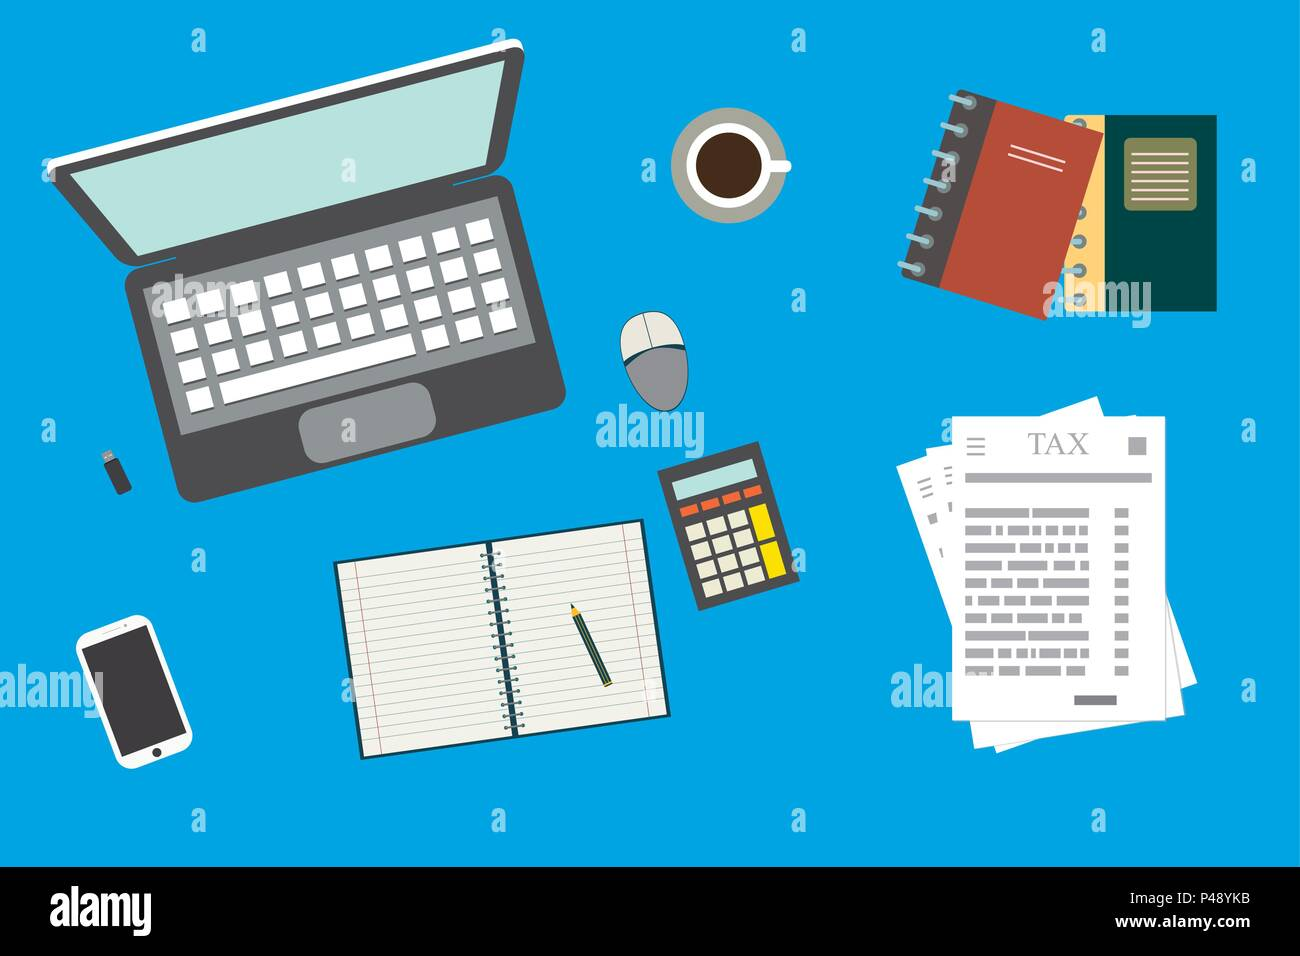 analytic research tax report on paper sheets work desktop top view